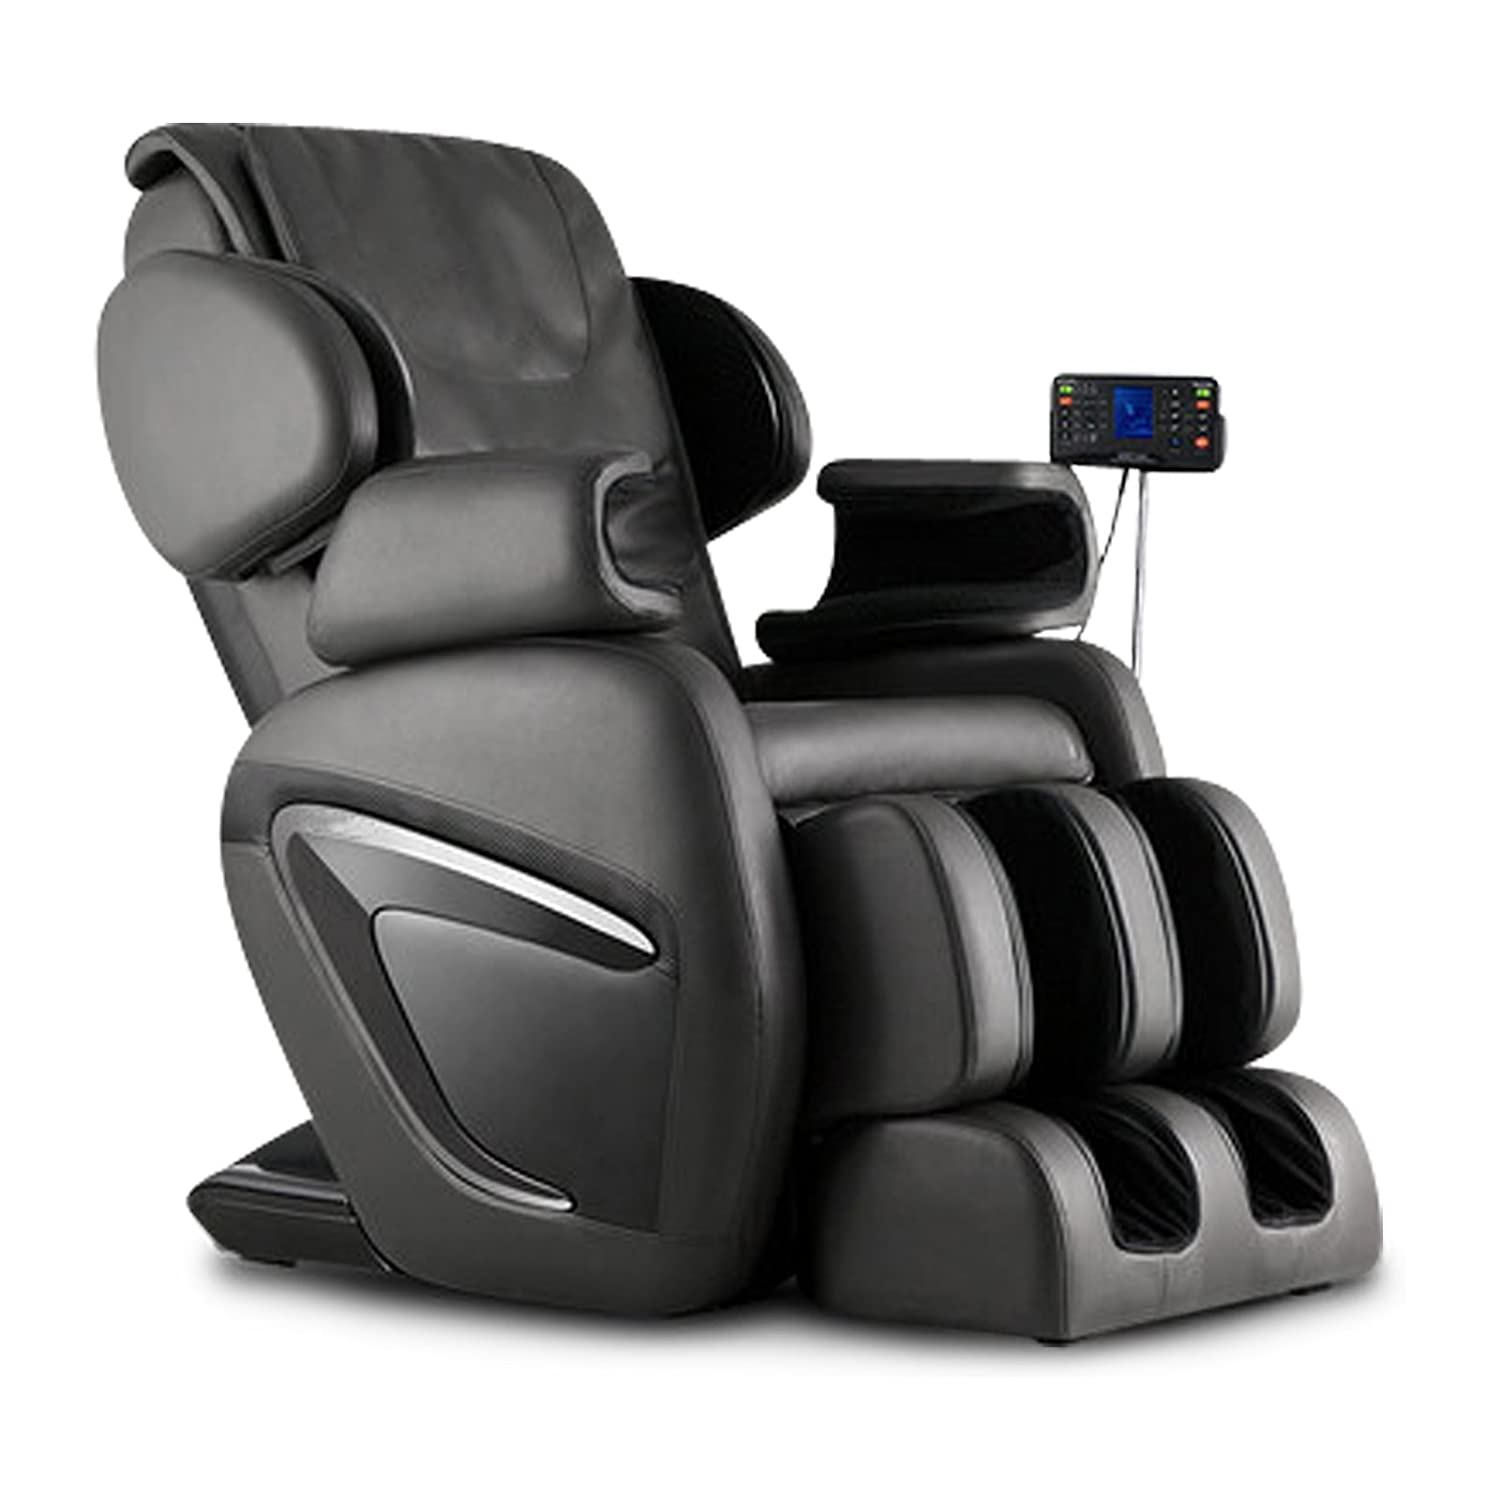 WEYRON Family Massage Chair Electric Reclining Zero Gravity